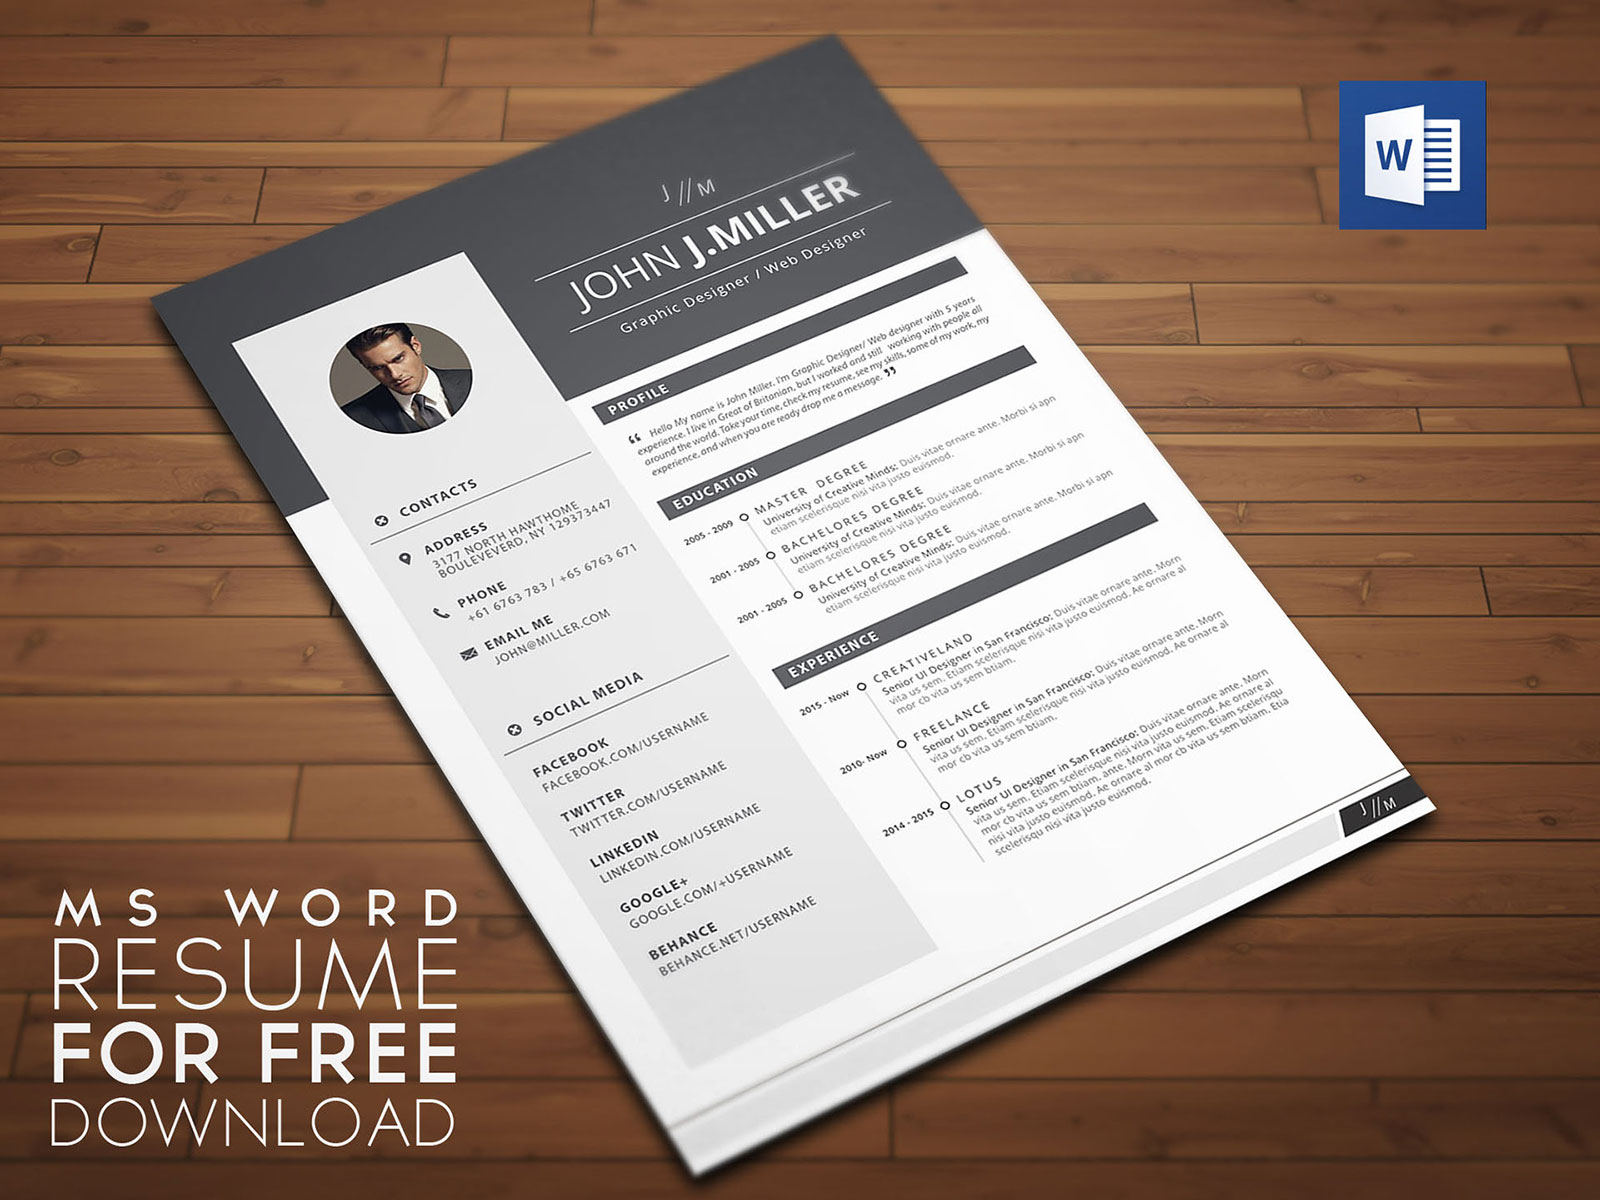 free resume cv template for ms word format good graphic design in material mover skills Resume Free Graphic Design Resume Template Word